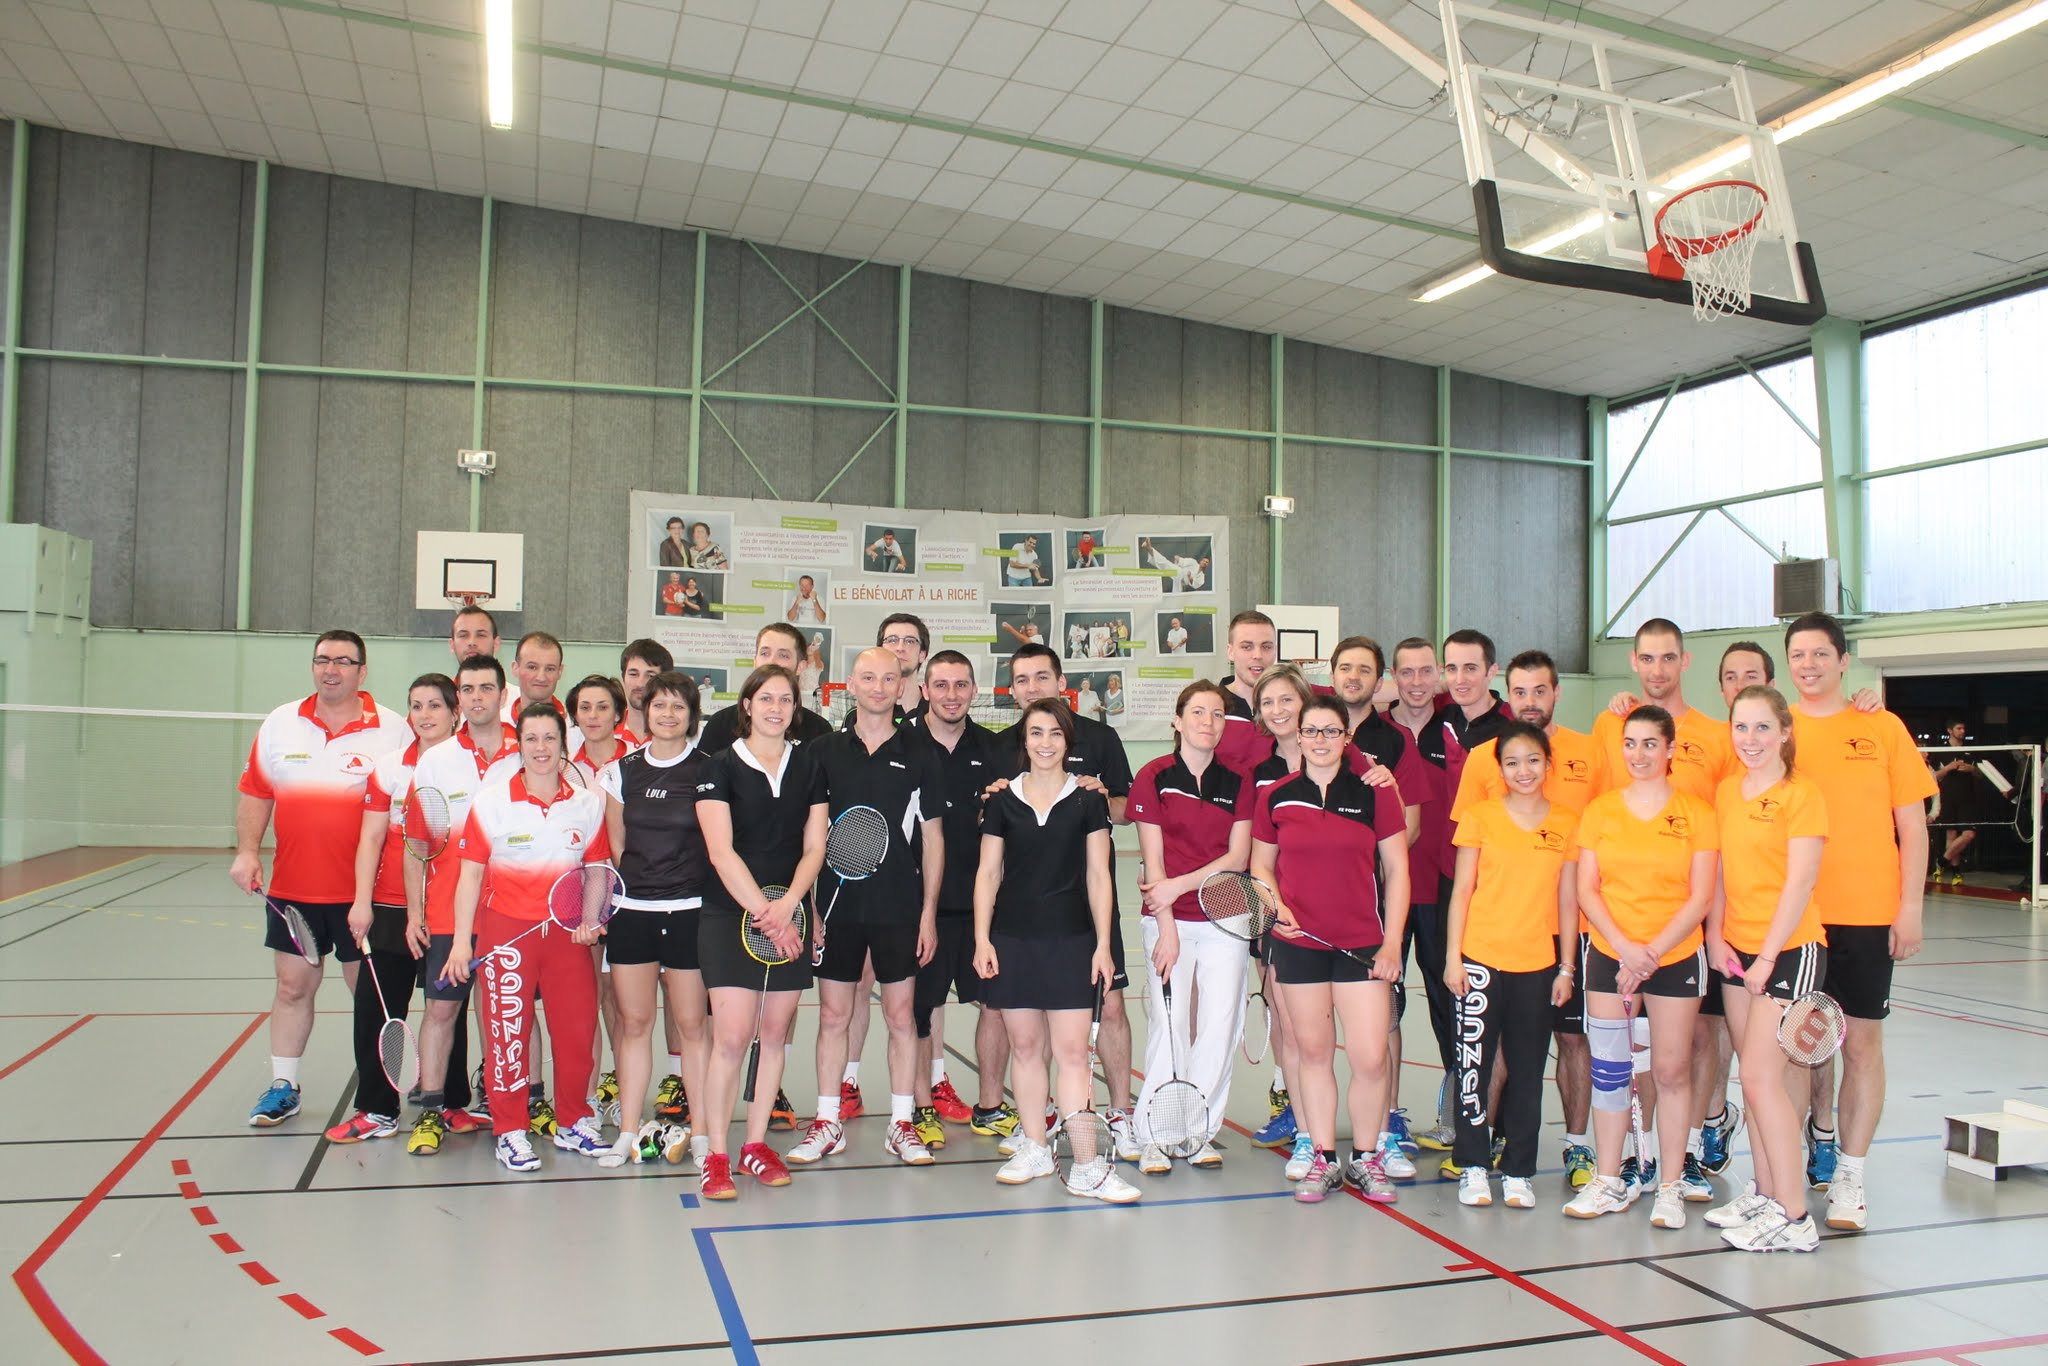 2014/2015 Demi-finales Interclubs D1